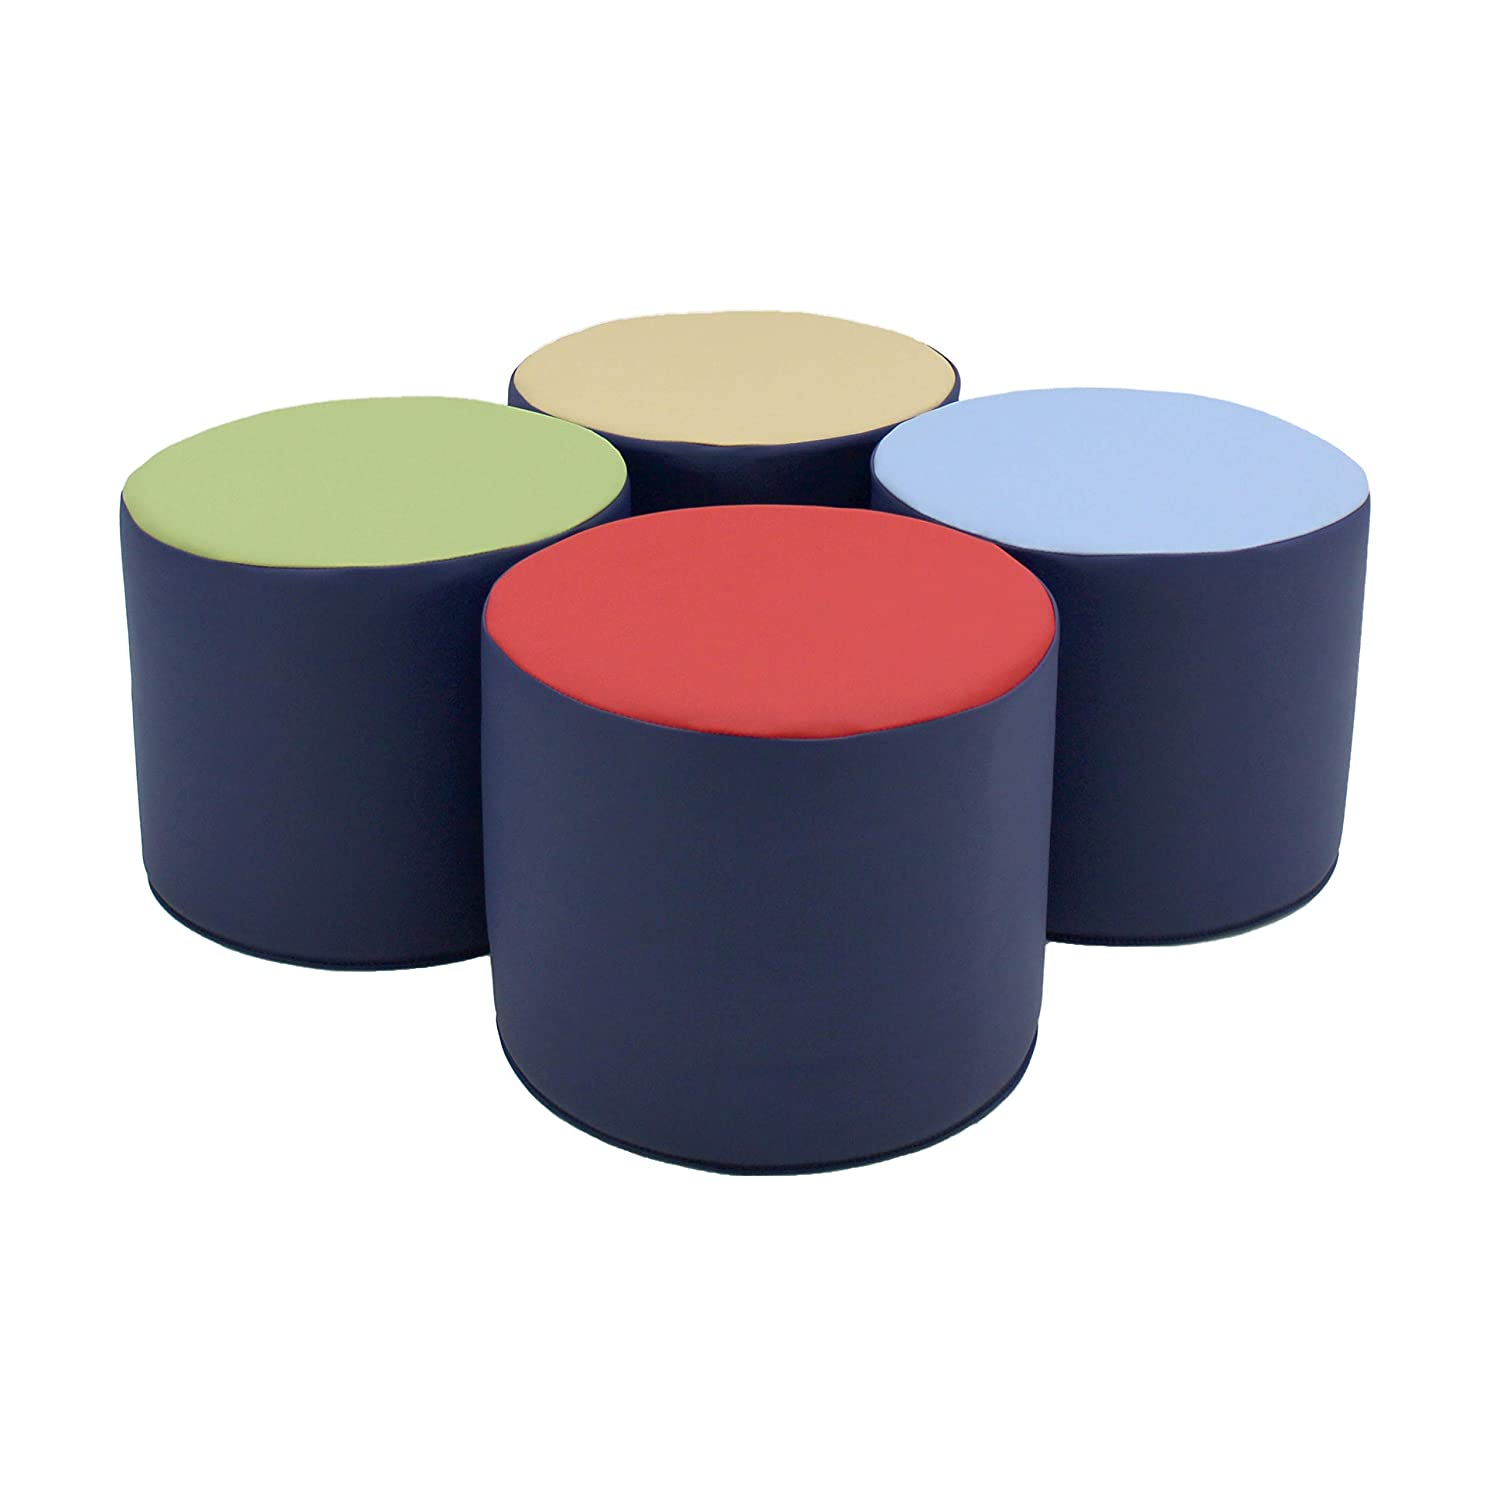 FDP SoftScape 15 inch Round Two-Tone Accent Ottoman for Kids; Modern Children's Furniture, Flexible, Lightweight Foam Seating Set for Home, Playroom, Classroom, Library (4-Piece) - Navy